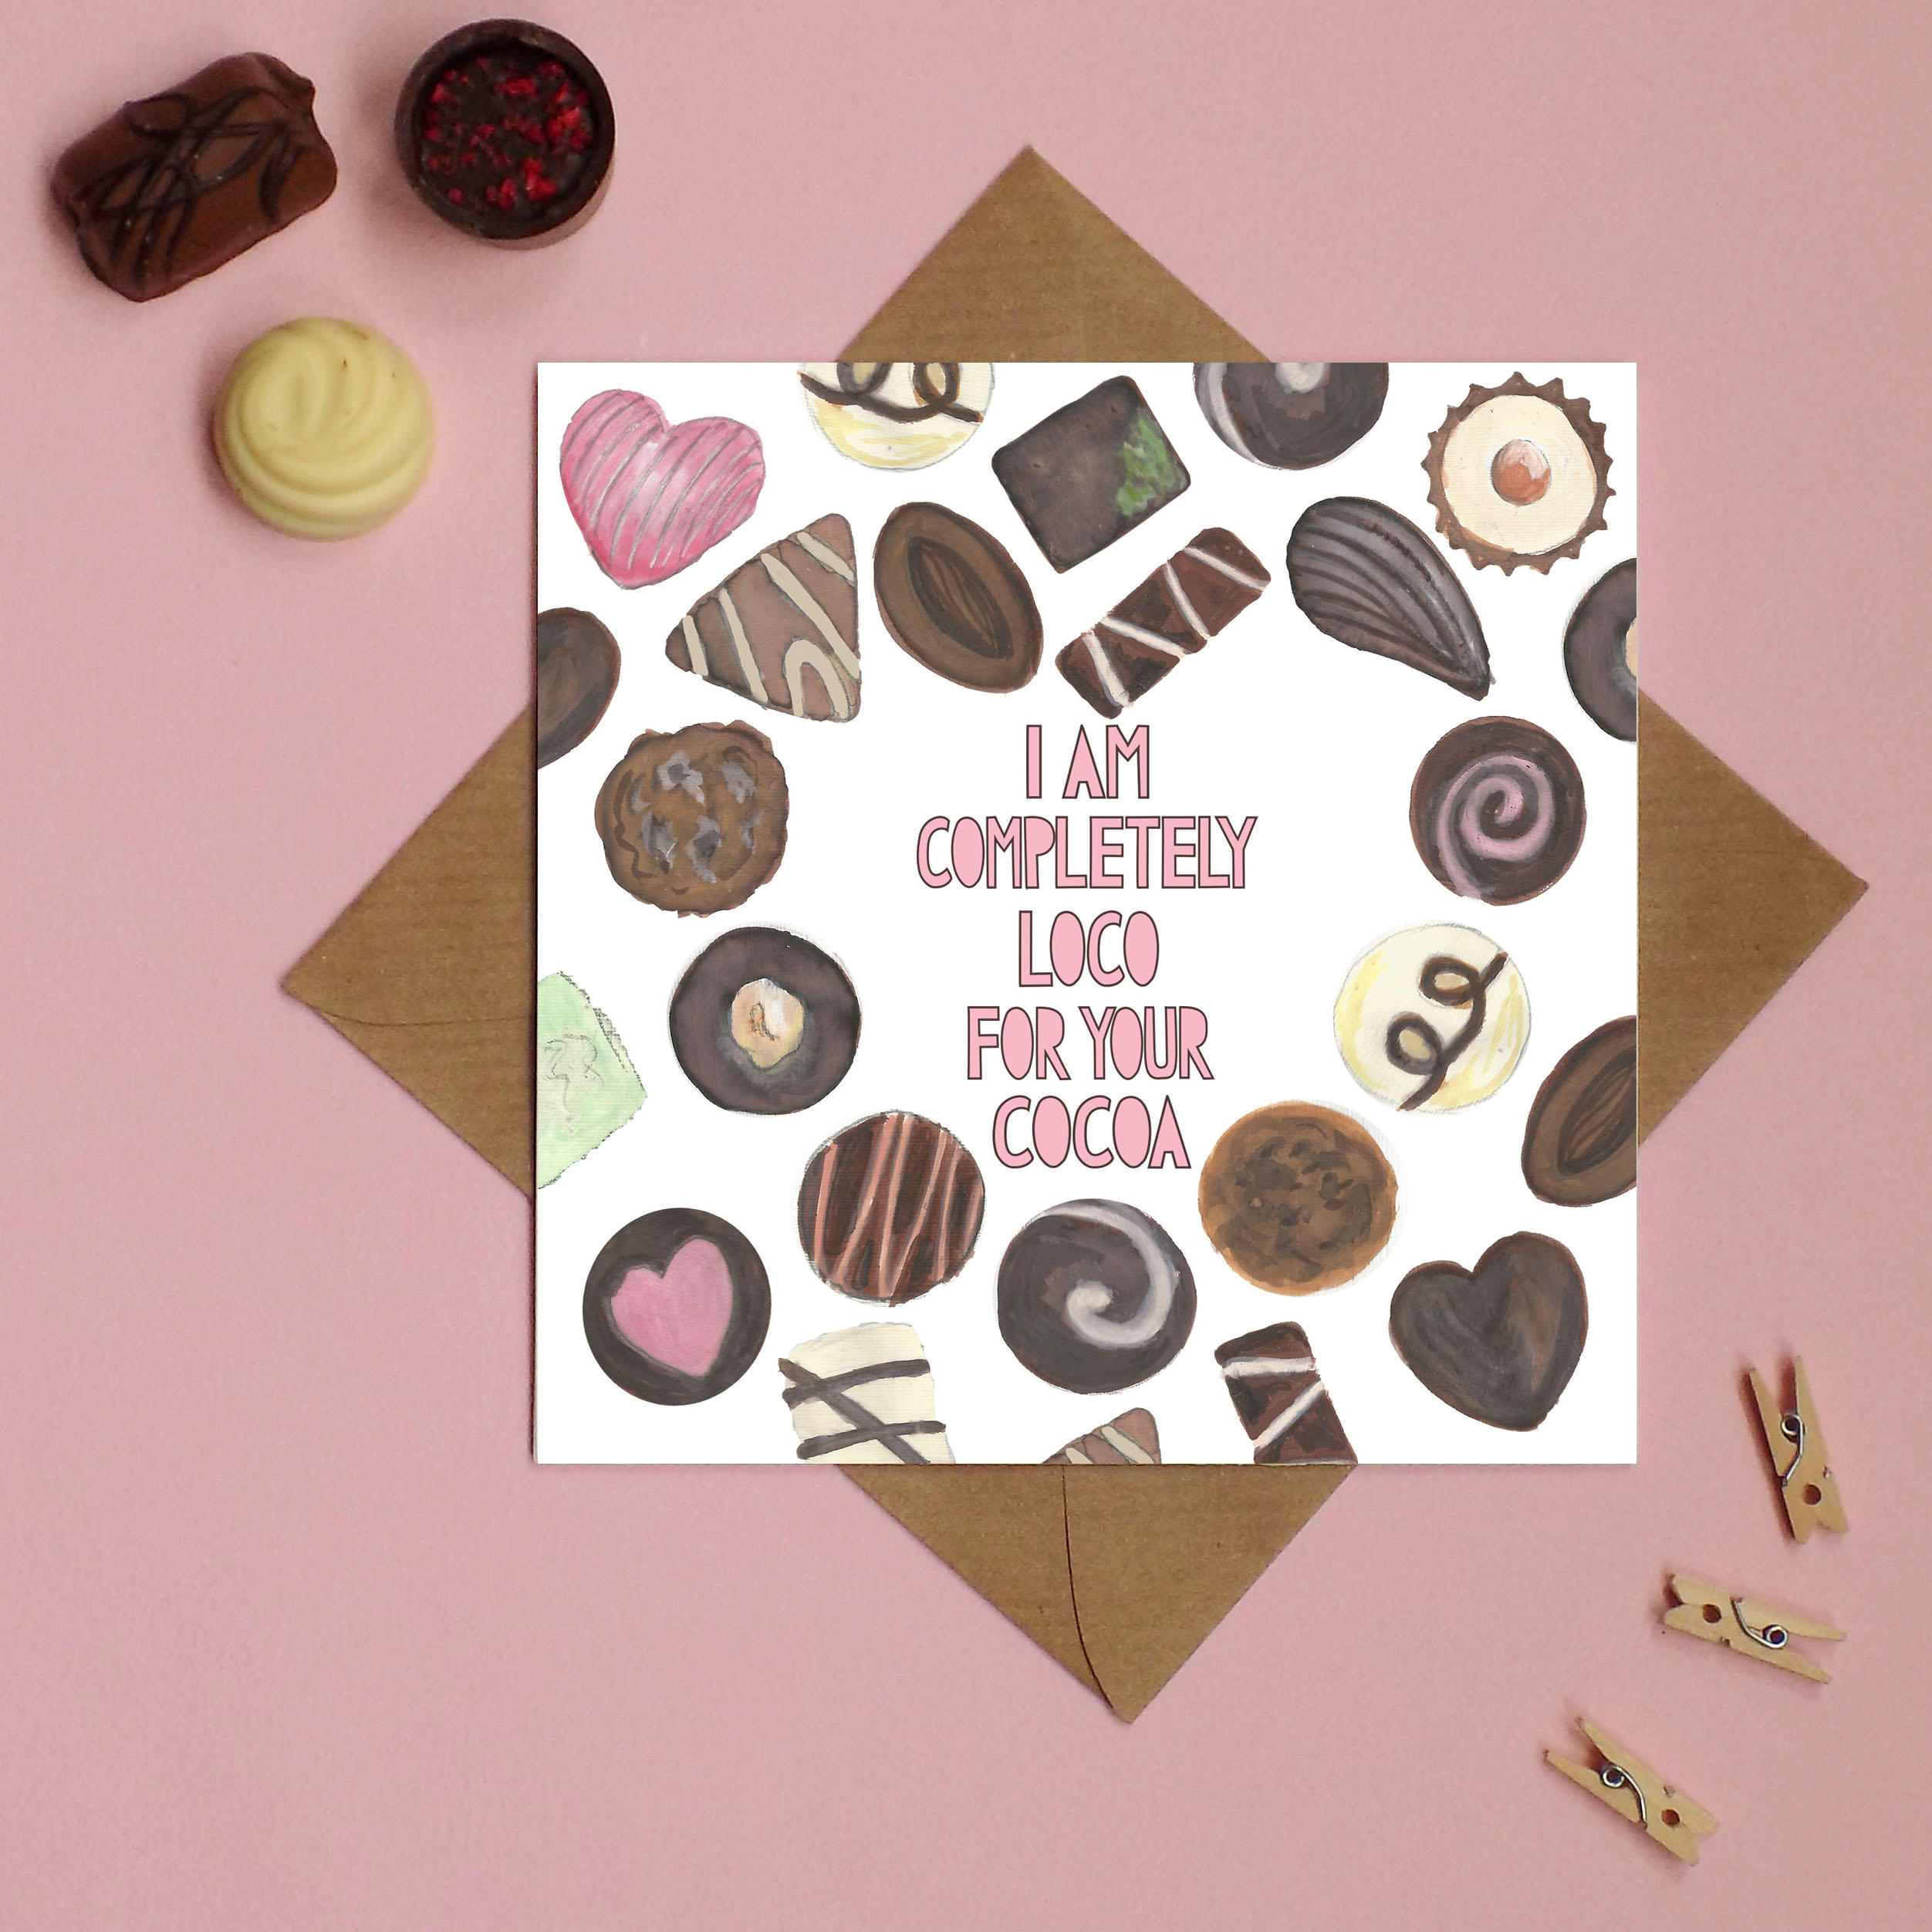 A side view of a greetings card with watercolour illustrations of chocolates on it and pink typographic text which says 'i am completely loco for your cocoa'